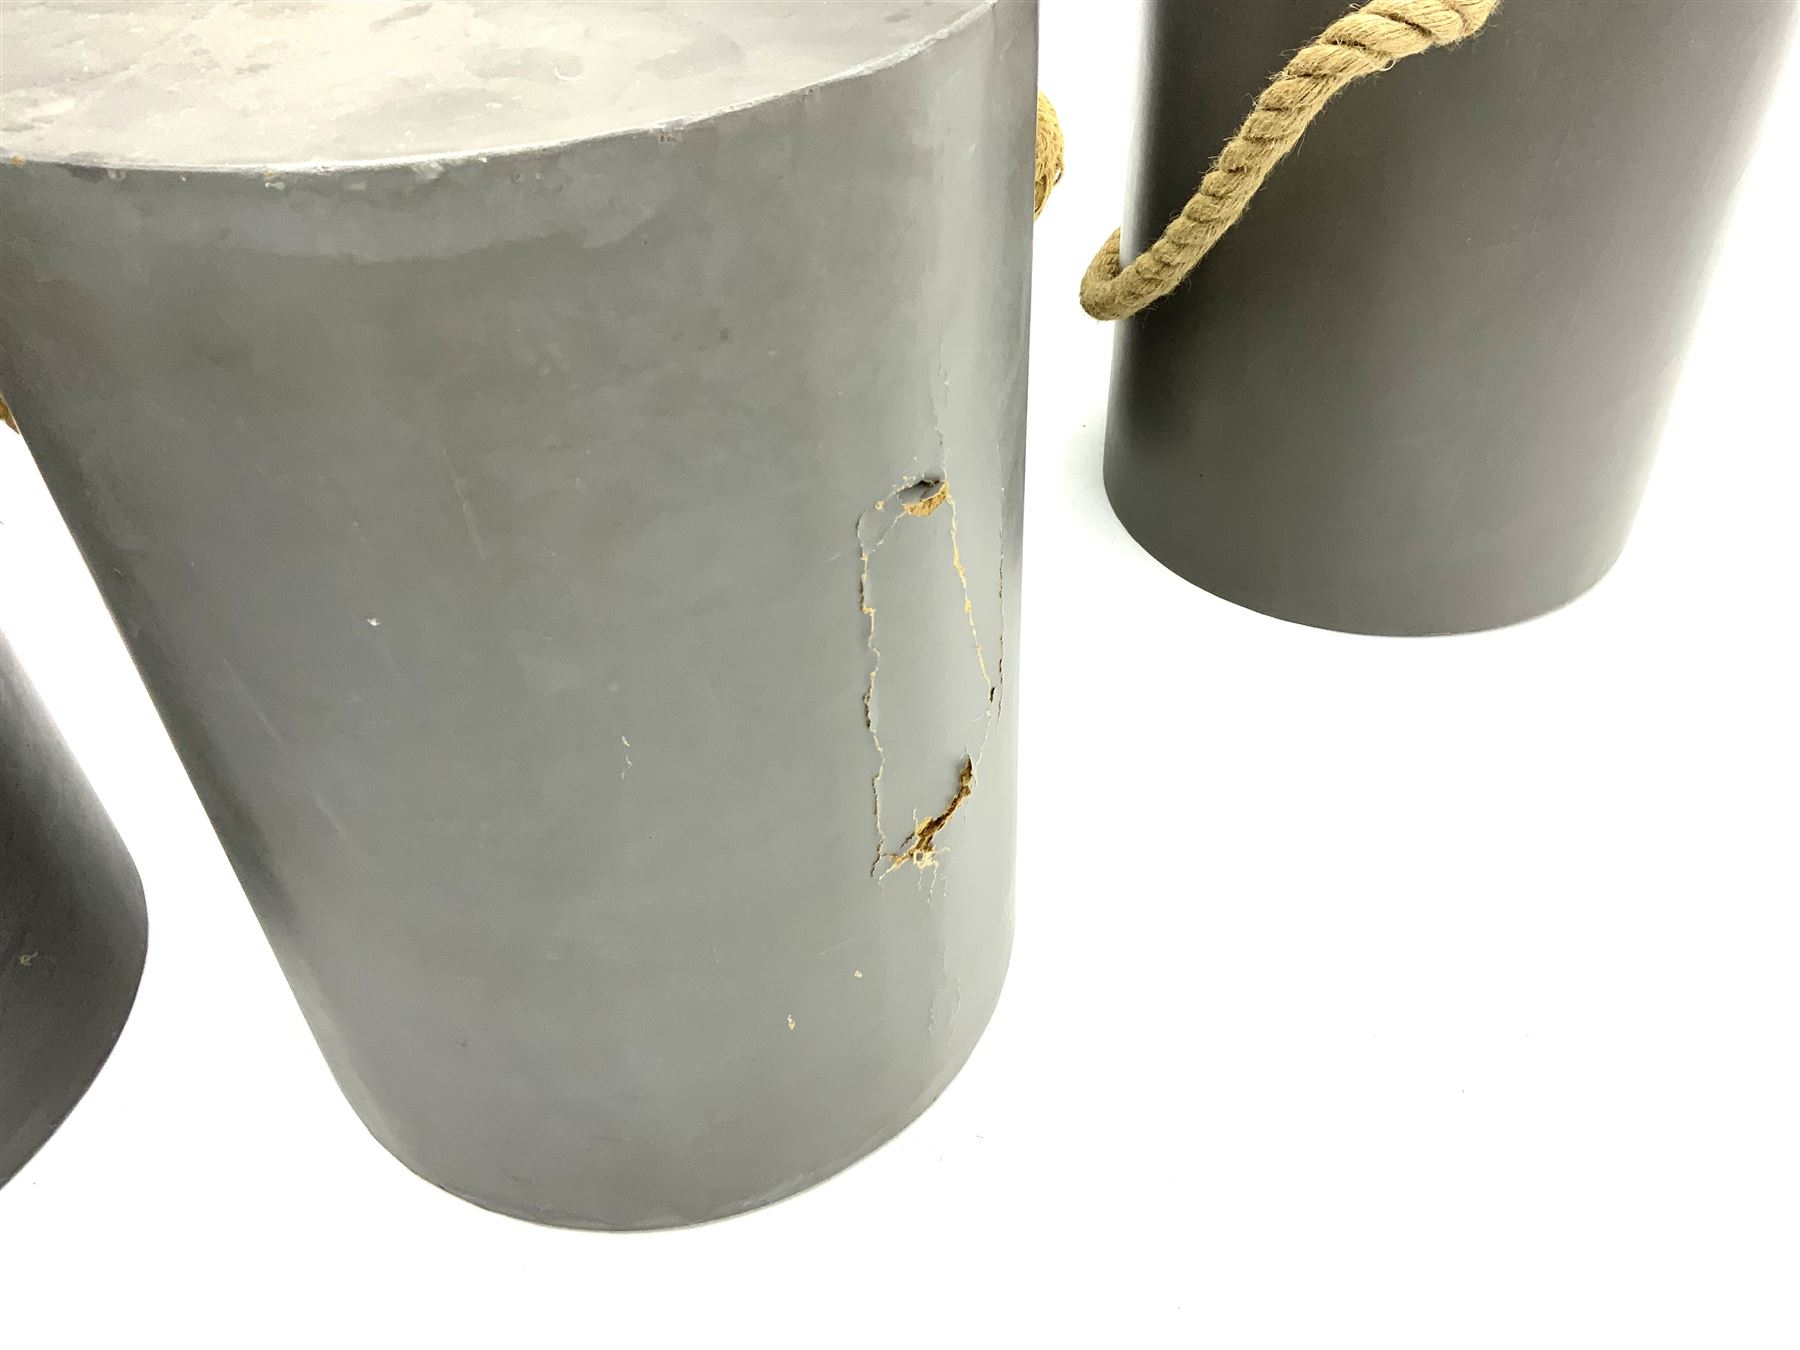 Five painted wood circular stools with rope detail - Image 3 of 3